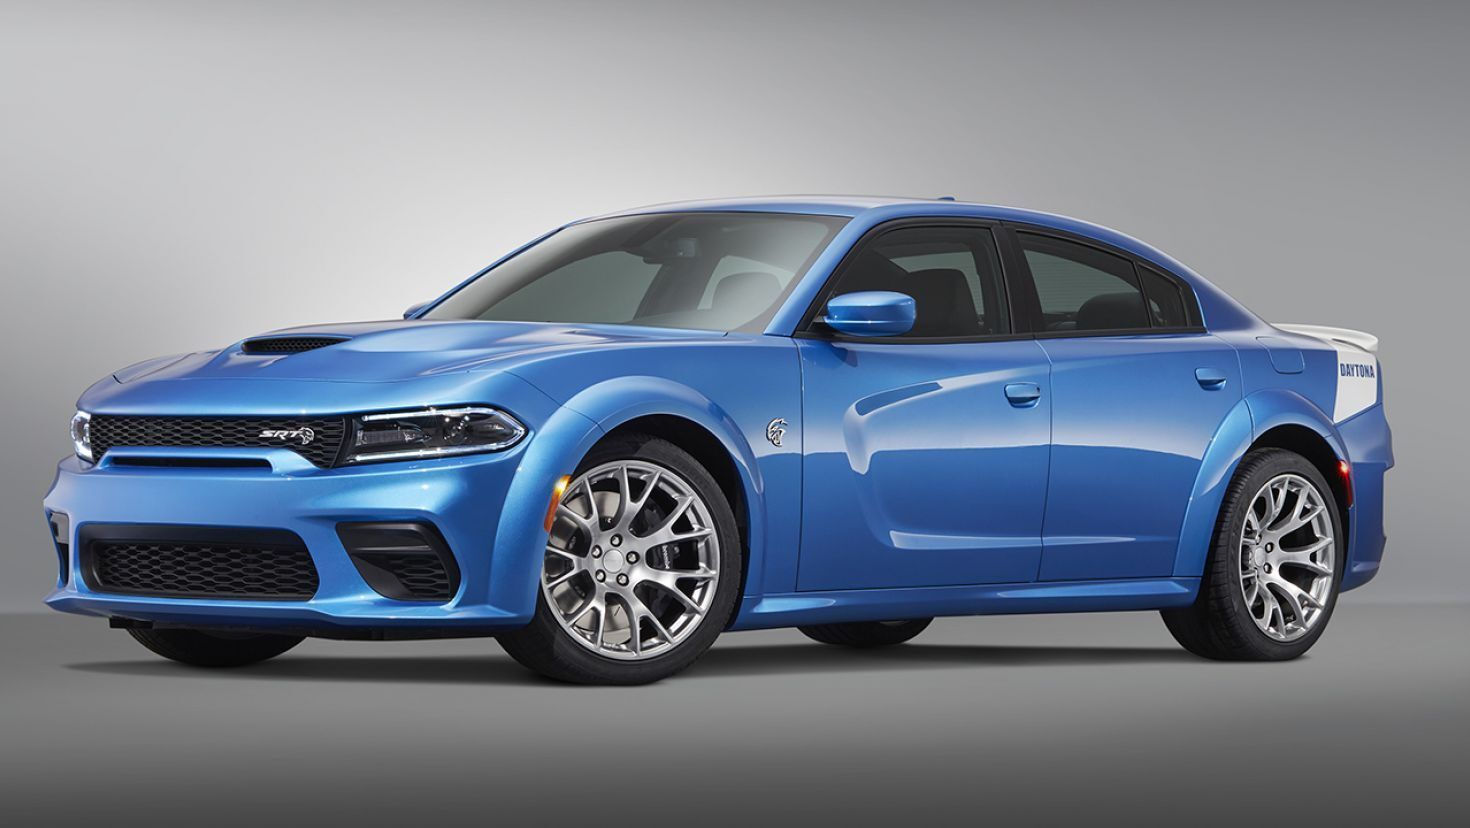 The 2020 Dodge Charger Srt Hellcat Widebody Daytona 50th